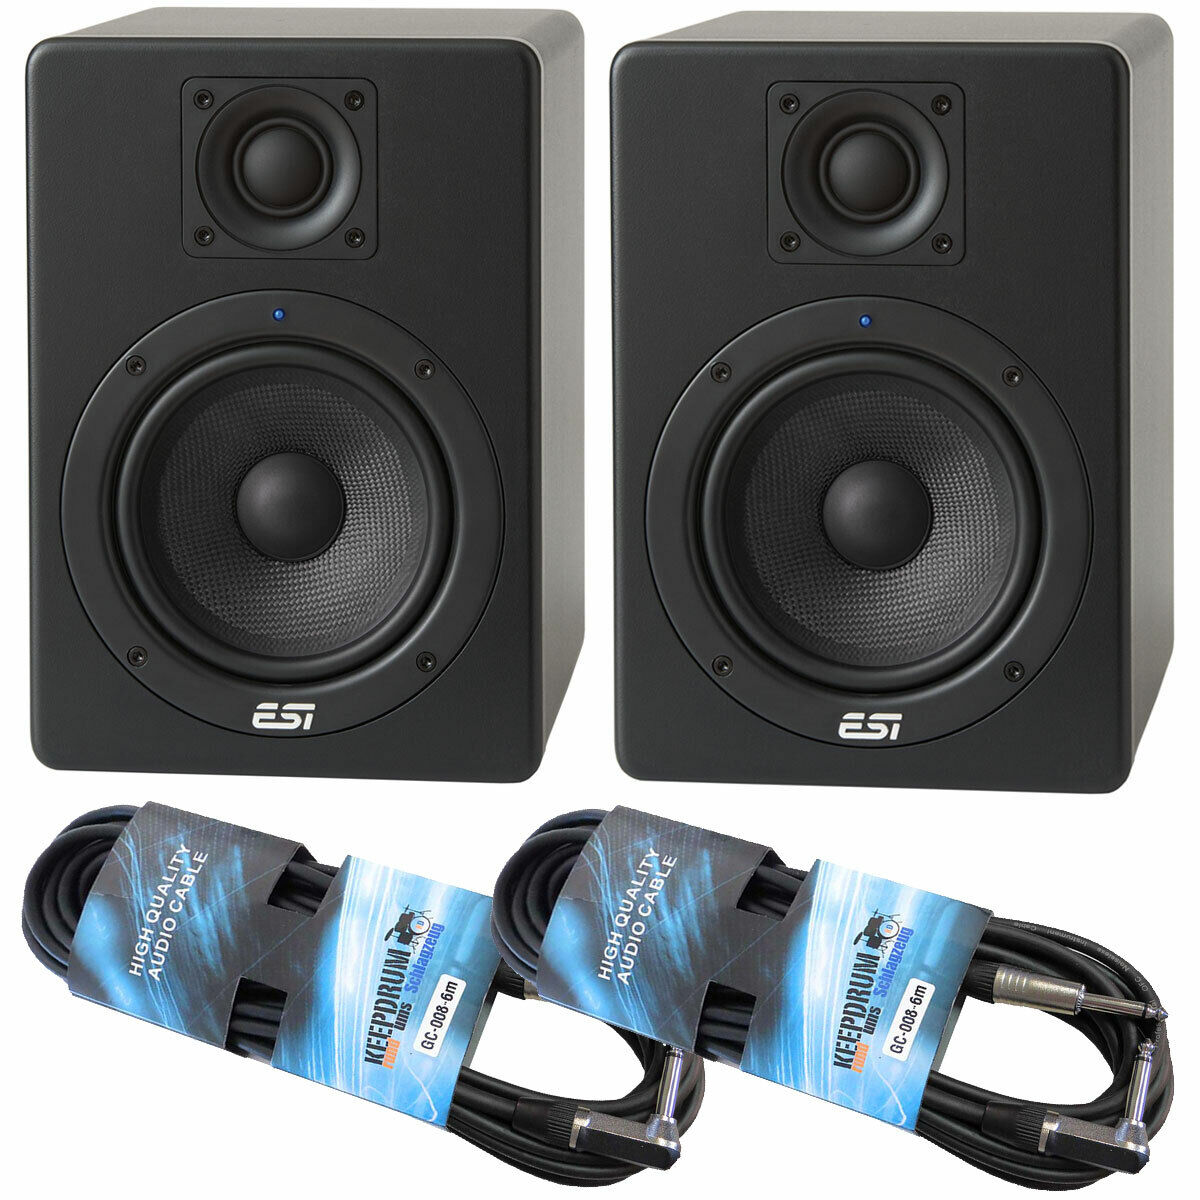 Esi Active 05 Monitor-Boxen 1 Paar 2x Keepdrum Jack Cable